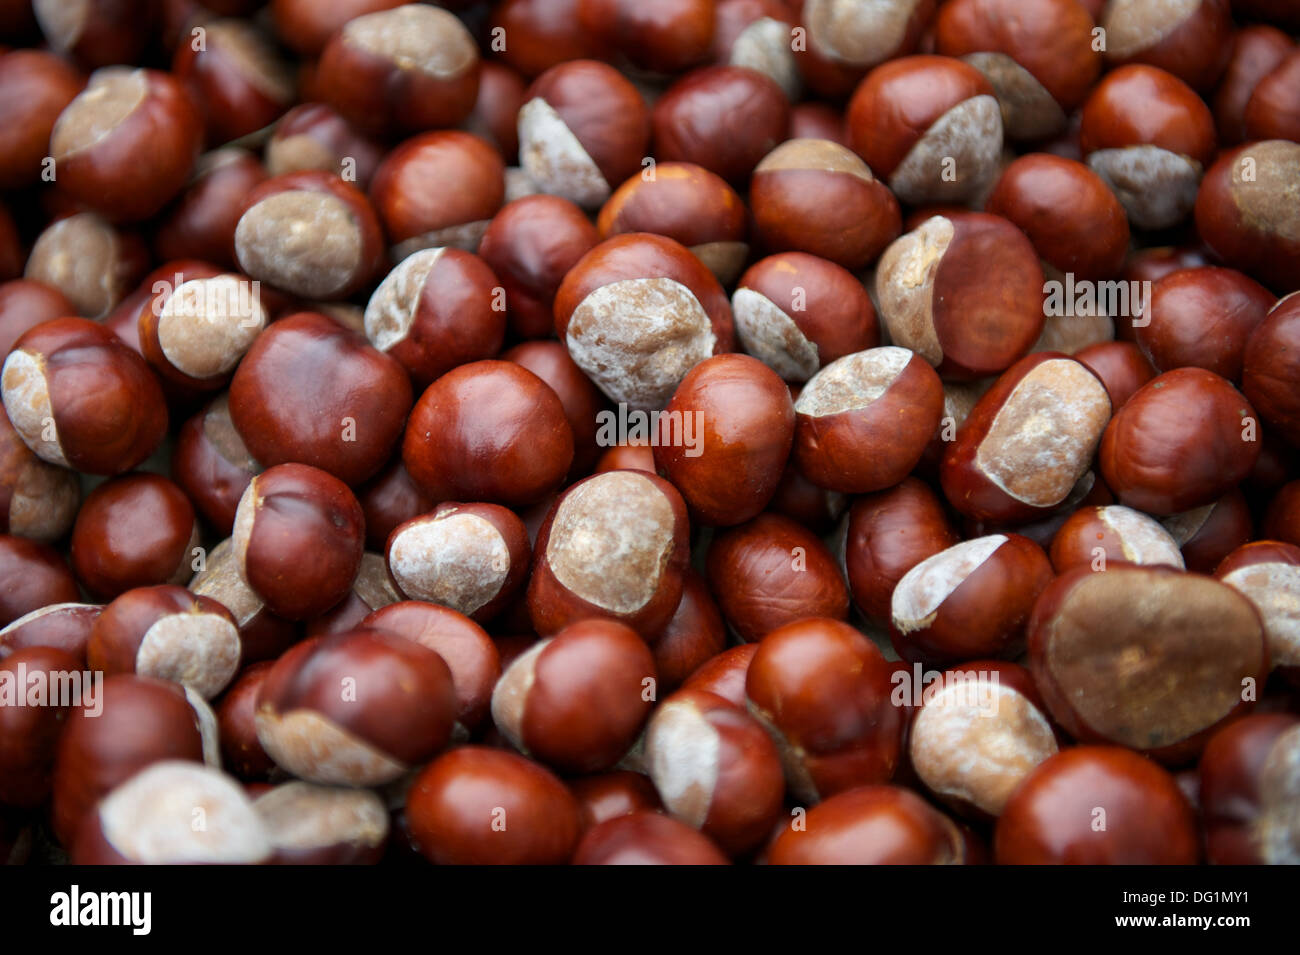 Pile of conkers - abstract background - horse chestnut tree seeds - Stock Image